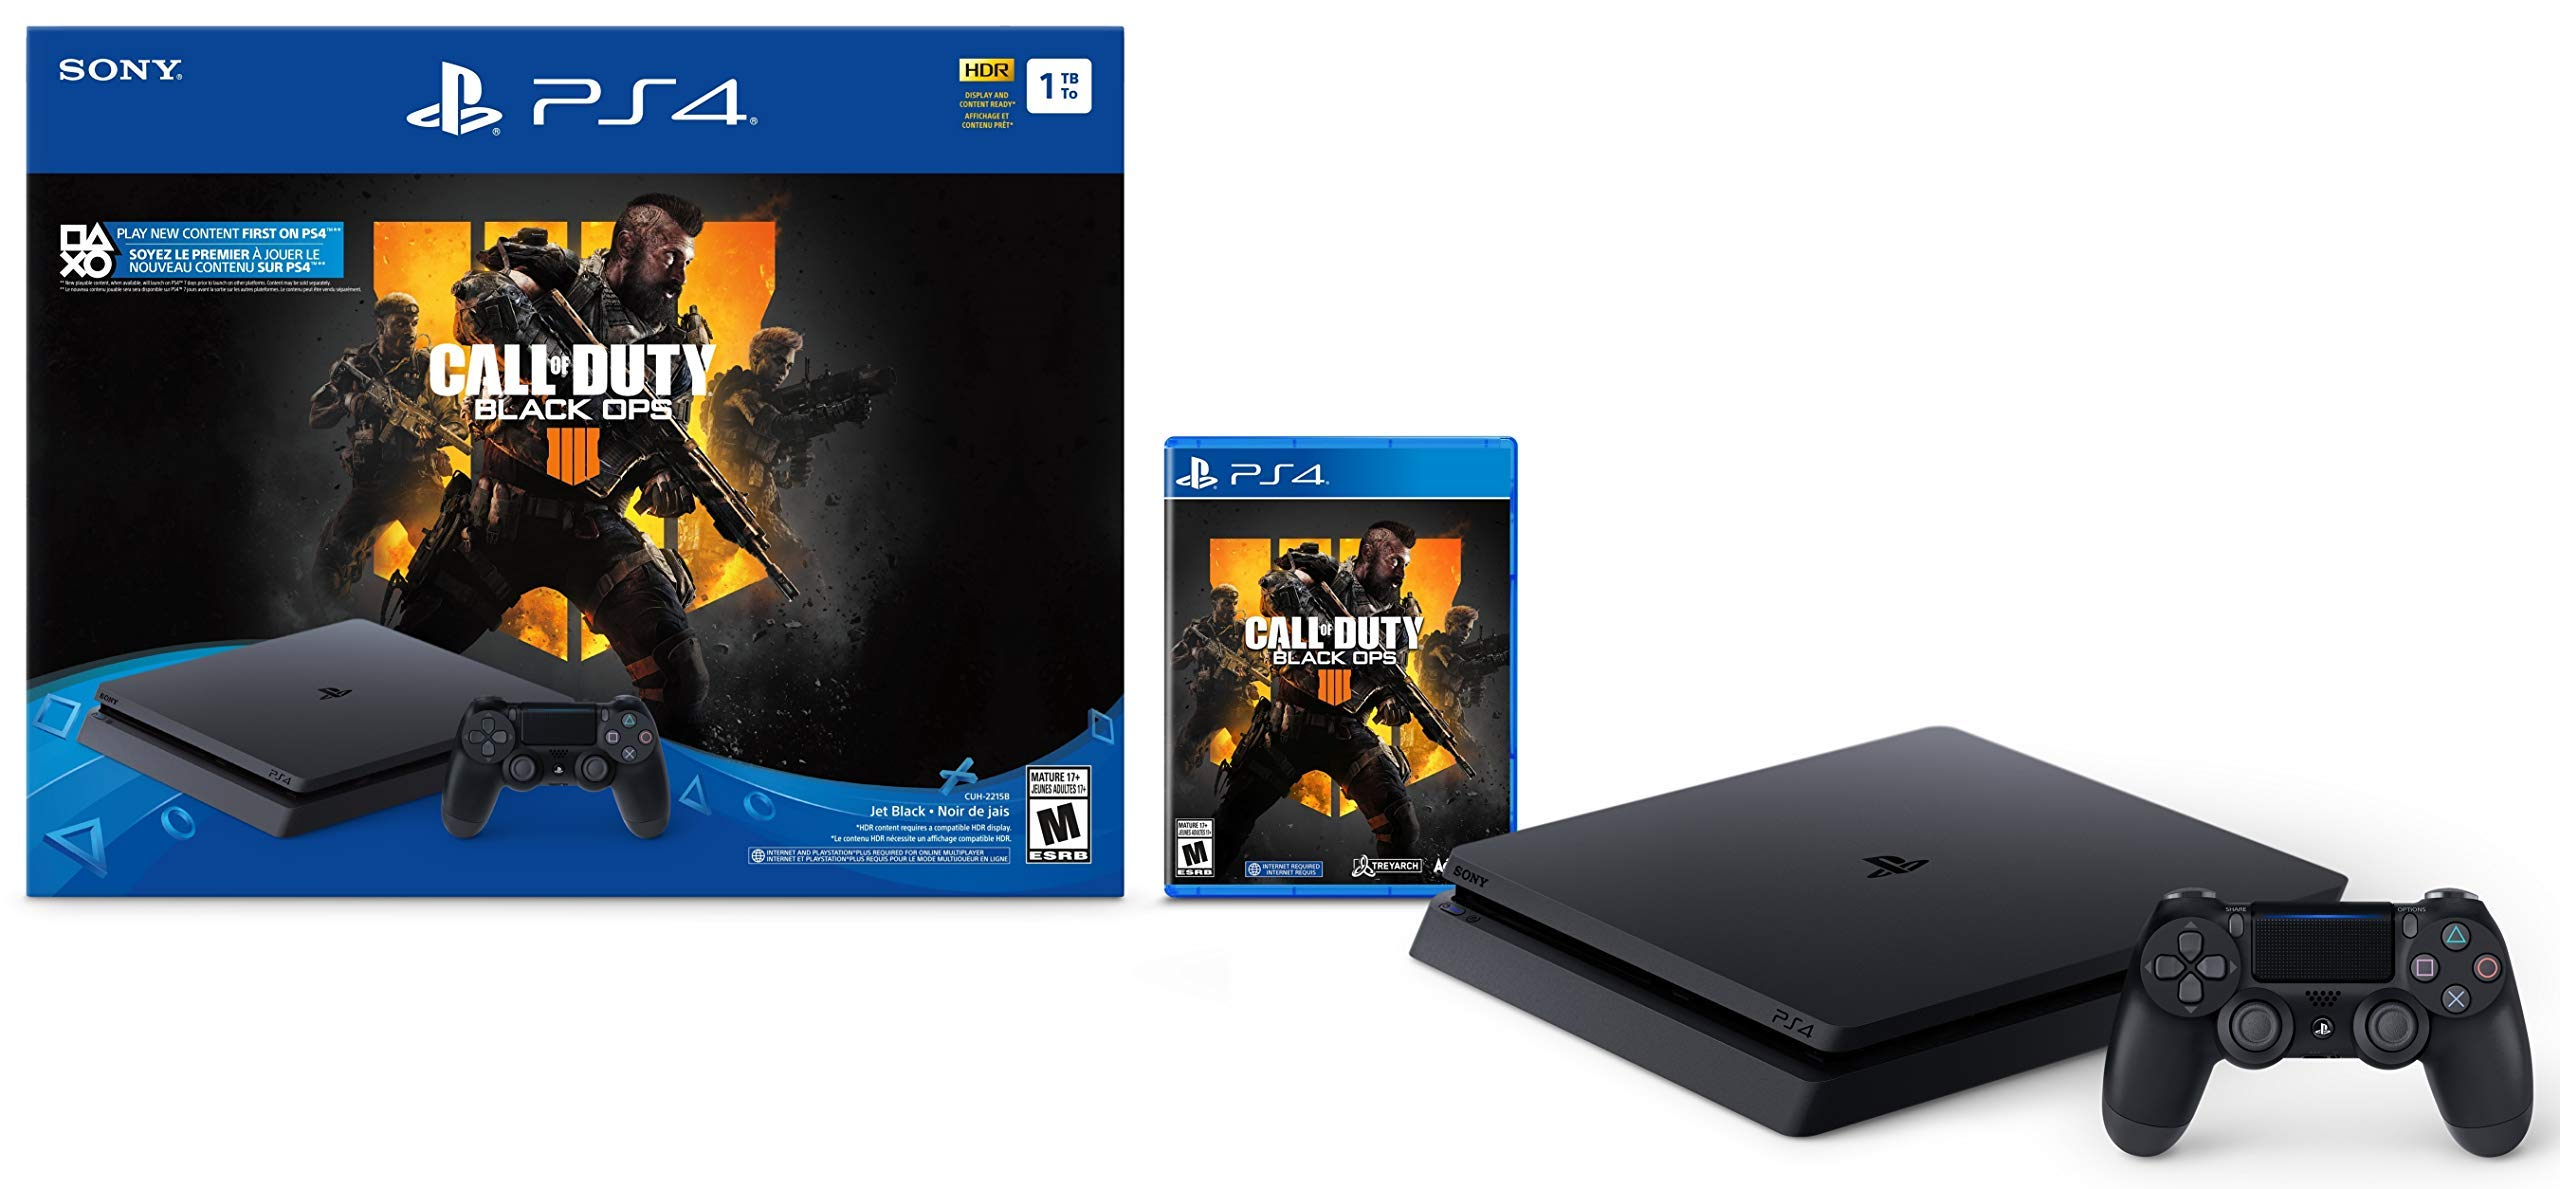 PlayStation 4 Slim 1TB Console - Call of Duty: Black Ops 4 Bundle (Renewed)